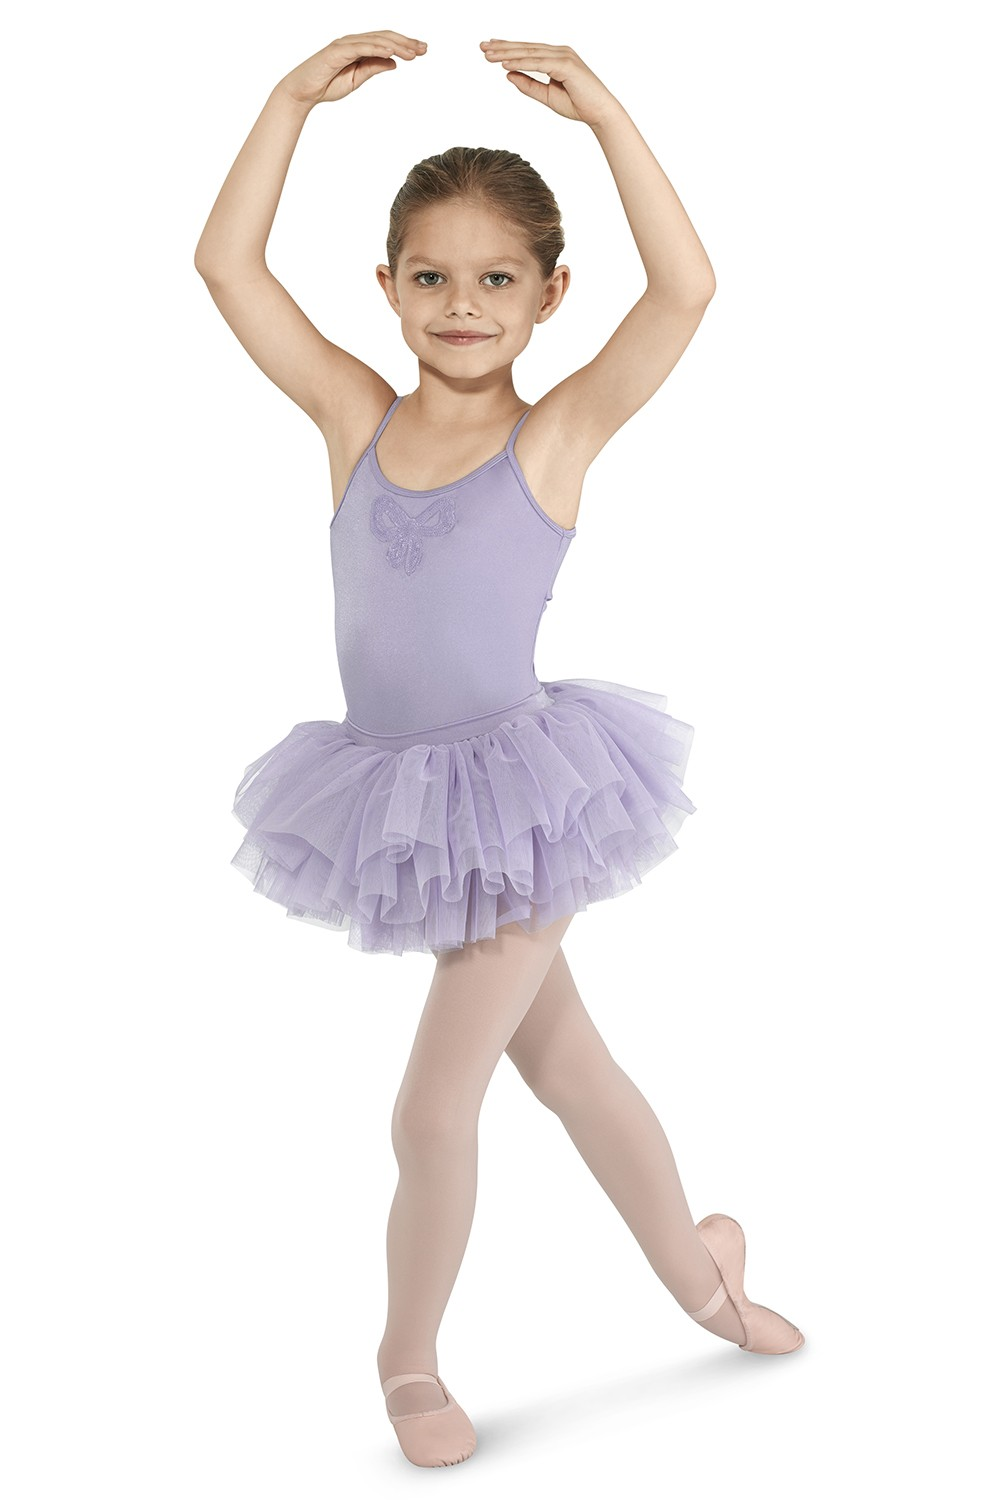 Bow Back Camisole Tutu Leotard Children's Dance Leotards